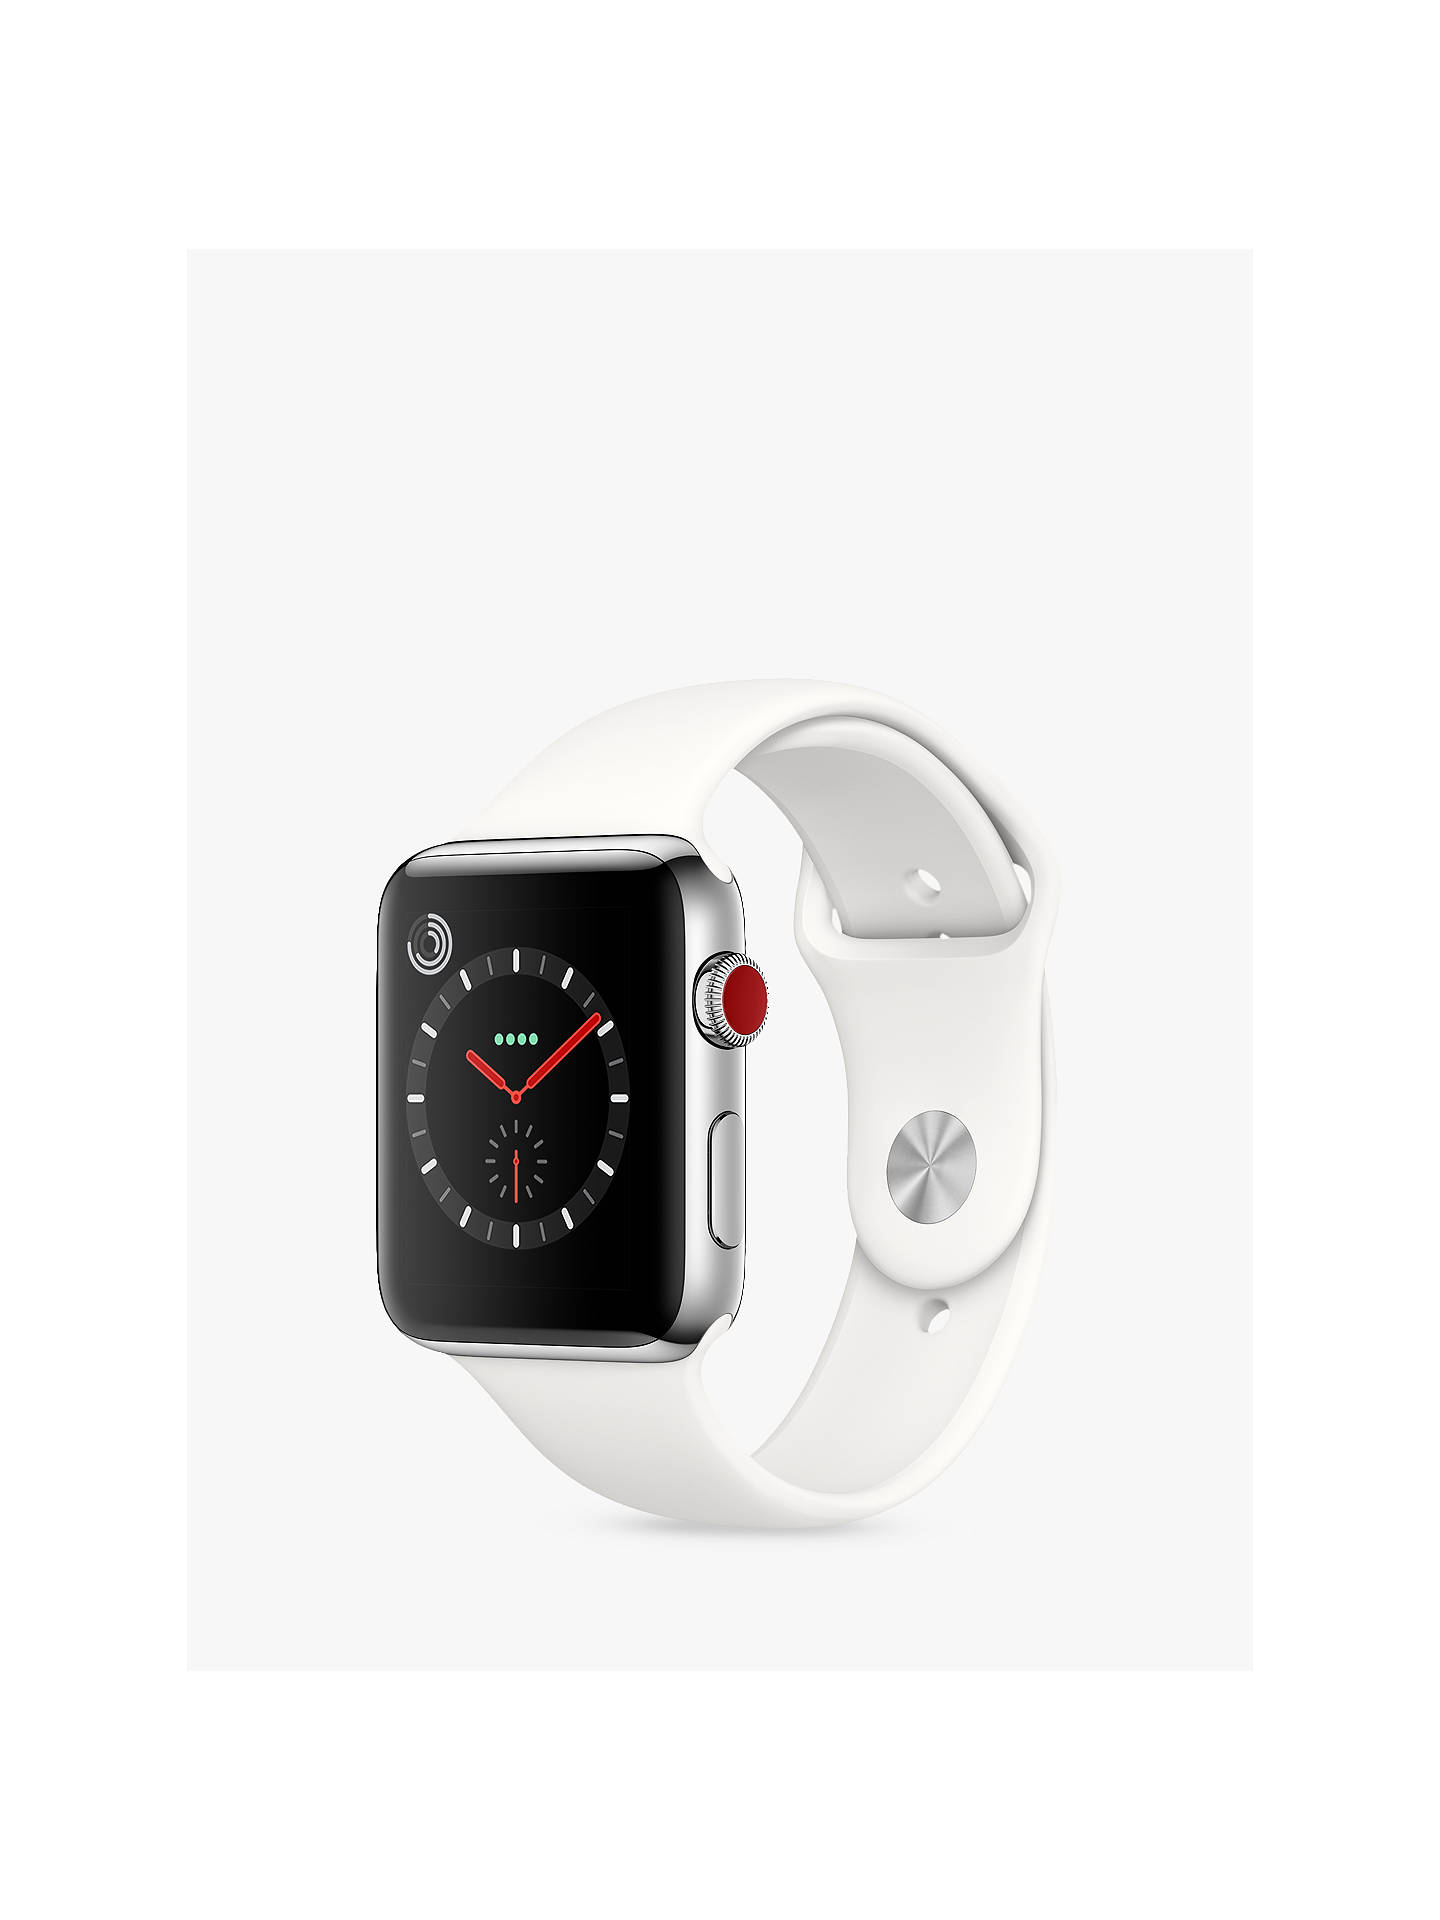 Buy Apple Watch Series 3, GPS and Cellular, 42mm Stainless Steel Case with Sport Band, Soft White Online at johnlewis.com